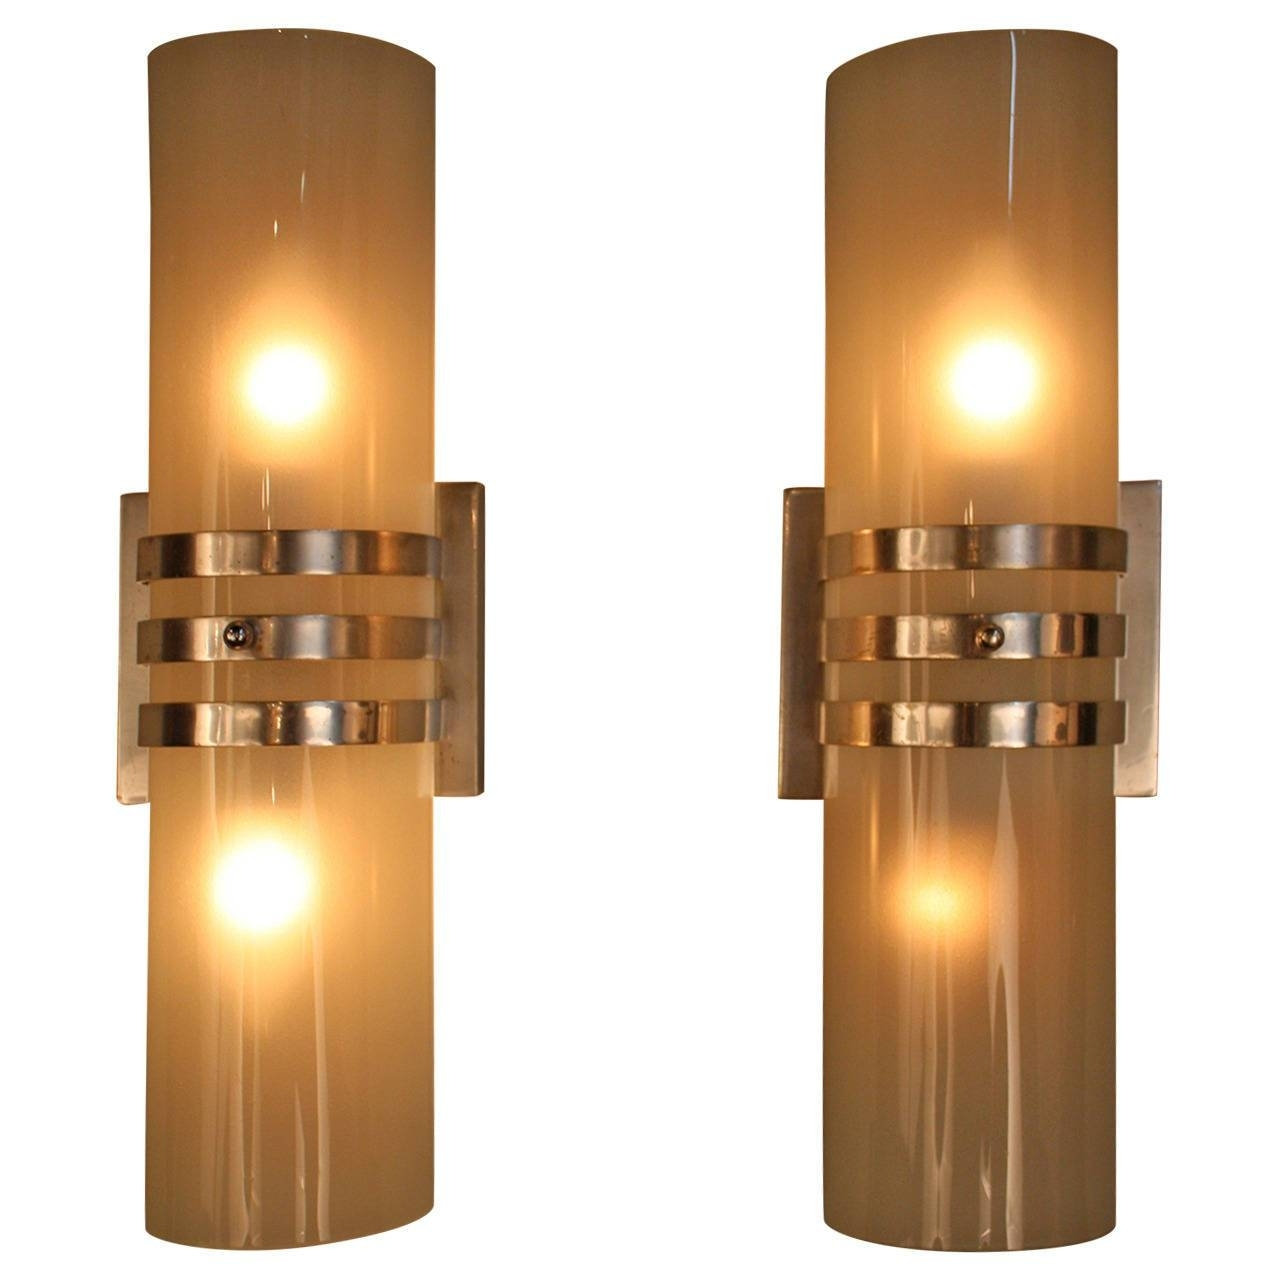 Well Known Wall Art Designs: Bathroom Art Deco Wall Sconces Light, Art Deco Regarding Art Deco Wall Sconces (View 14 of 15)